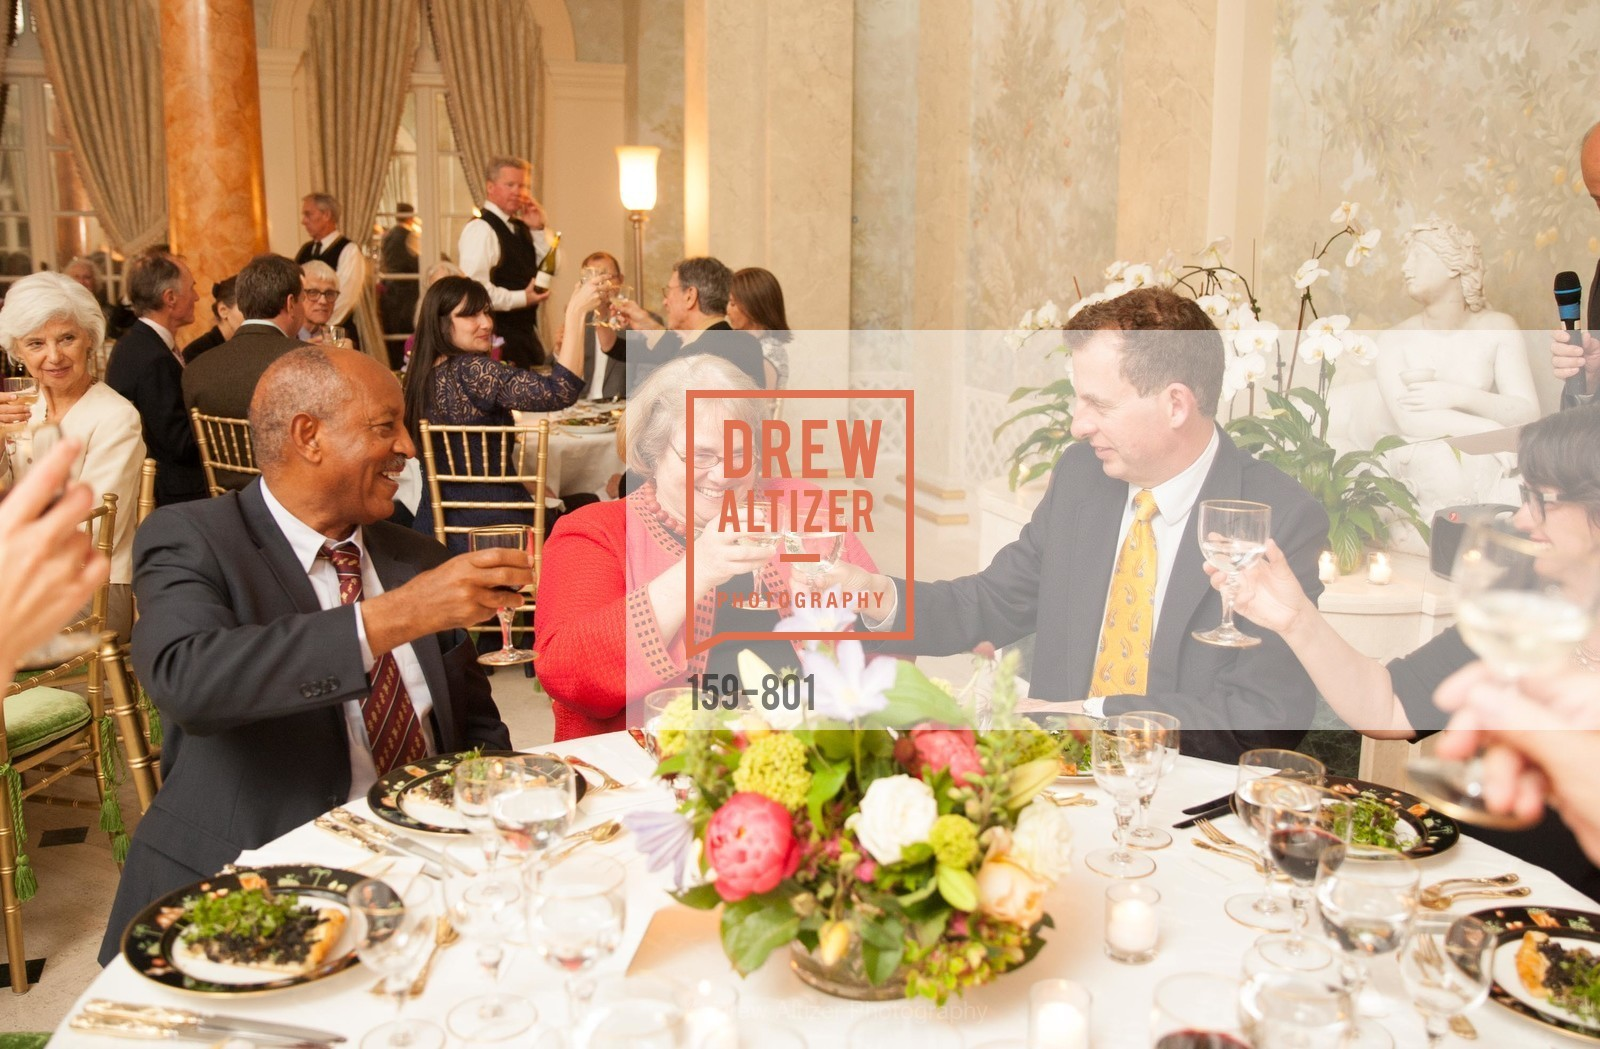 Derhame Asfaw, Camilla Smith, Brian Howell, GETTY Hosts Leakey Foundation Dinner, US, April 24th, 2015,Drew Altizer, Drew Altizer Photography, full-service agency, private events, San Francisco photographer, photographer california